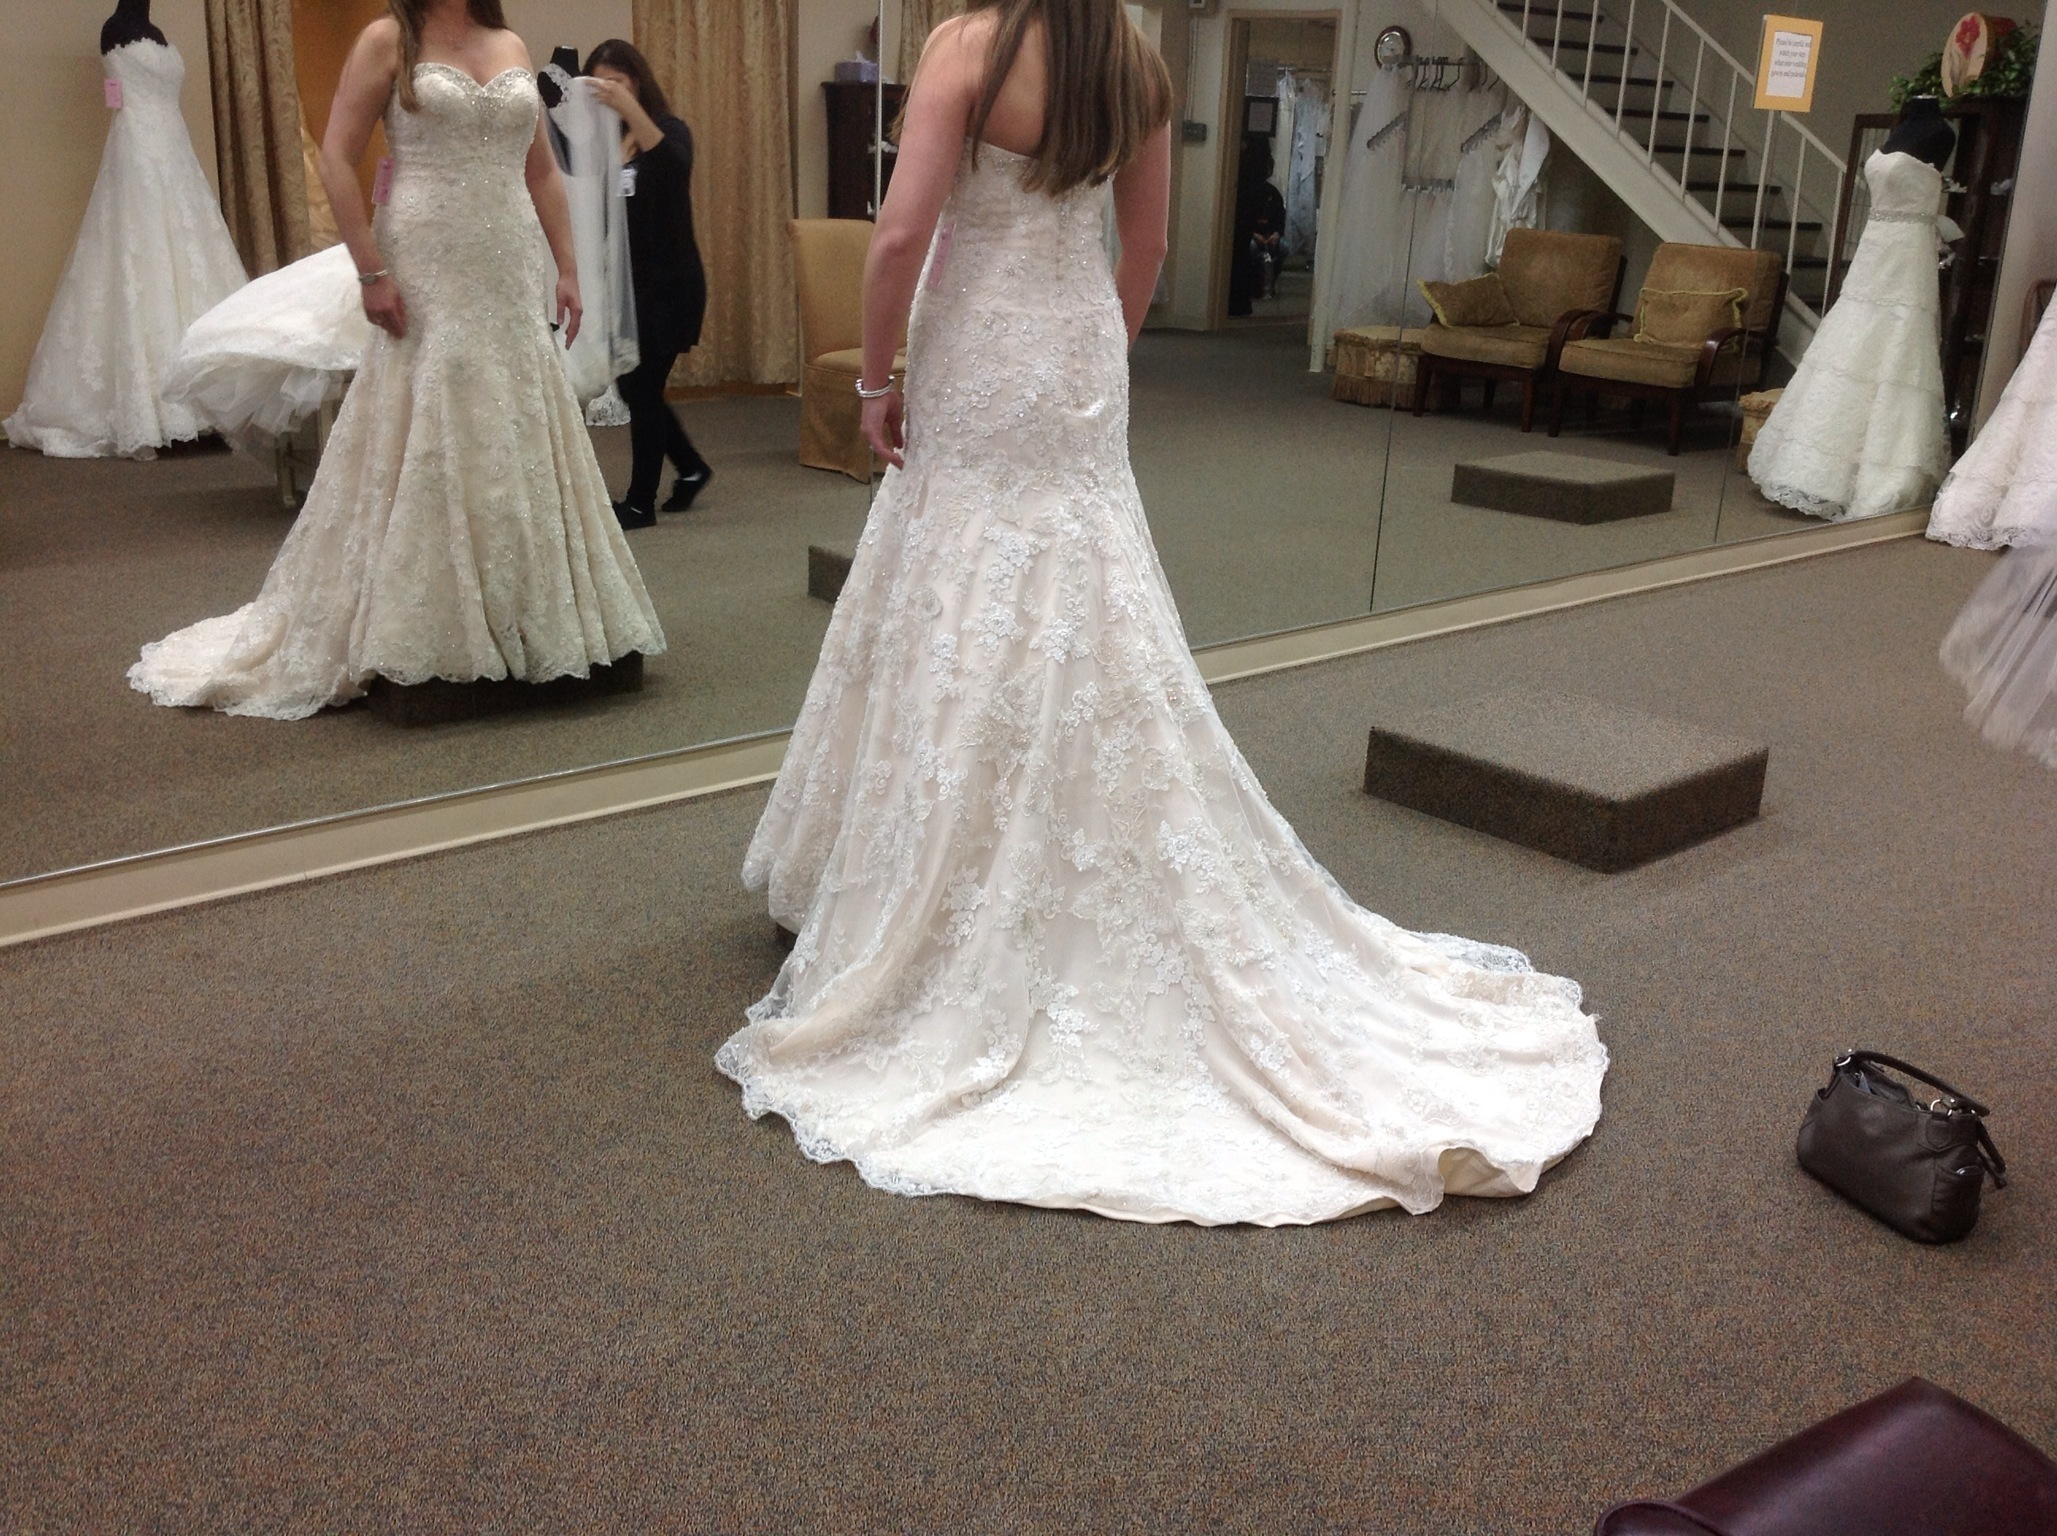 Lace, Notmydress, Badstore, Notthedress, Feltfat, Tooheavy, Overbudget